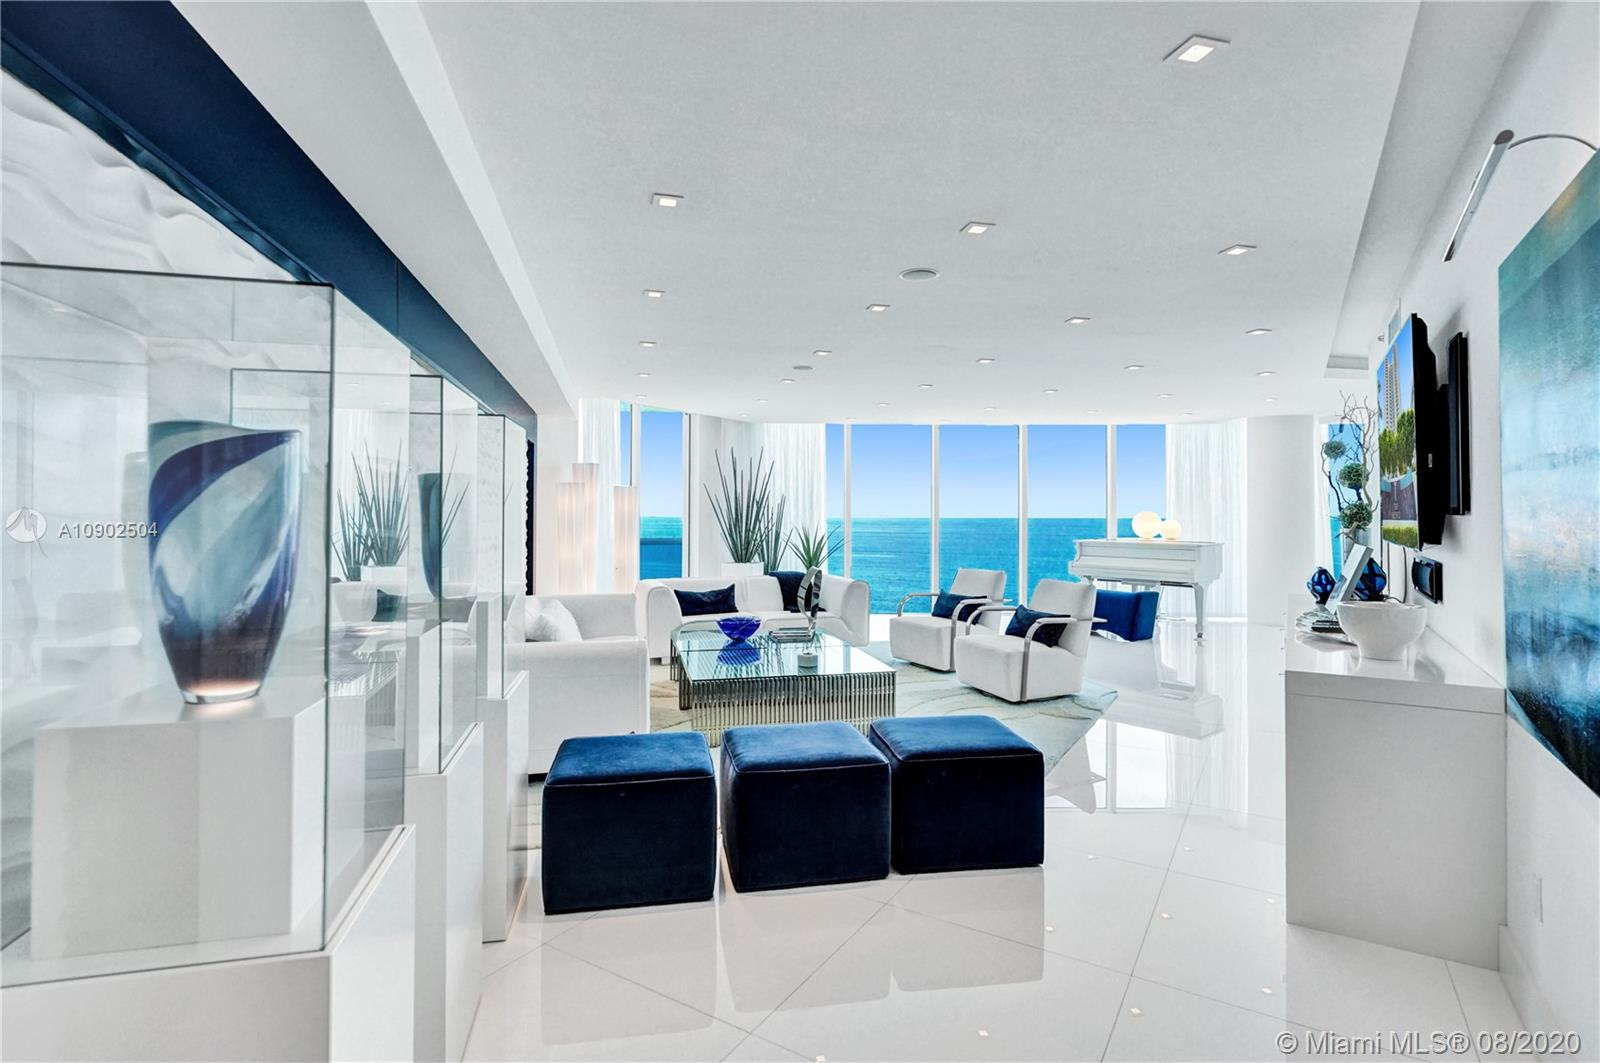 WOW! THE CROWN JEWEL OF LUXURIOUS TRUMP HOLLYWOOD! PANORAMIC DIRECT OCEAN VIEWS! NO EXPENSE SPARED! THIS FABULOUS UNIT FEATURES 3BD/3BR, BREATHTAKING VIEWS IN EVERY DIRECTION. PRIVATE ELEVATOR ENTRANCE, HIGH CEILINGS, FLOOR TO CEILING GLASS WINDOWS, FINEST FINISHES!  Stunning! Exquisite Lobby, Unsurpassed Amenities incl. Breakfast Room, Wine + Cigar Lounges, Fitness Center, Spa, Massage Rooms, Theater, Party Room, Caterer's Kitchen, Pool + Beach Service, 24 hr Security, Valet. 2 PARKING SPACES & HUMIDOR.  CABANA NEGOTIABLE.